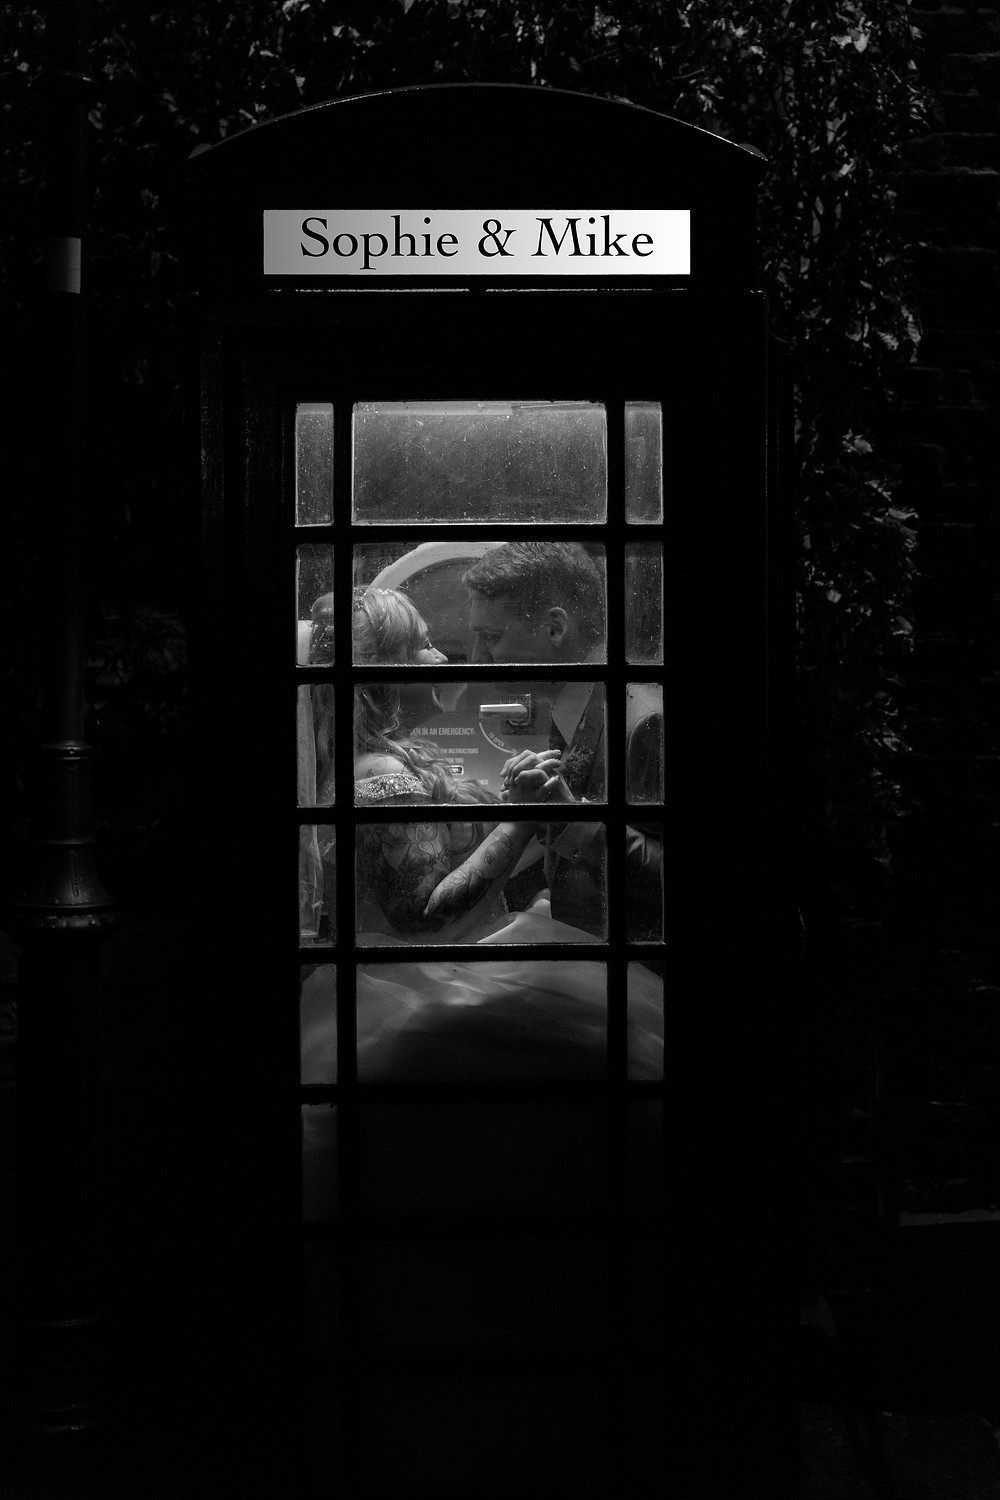 Bride and groom in a telephone box.